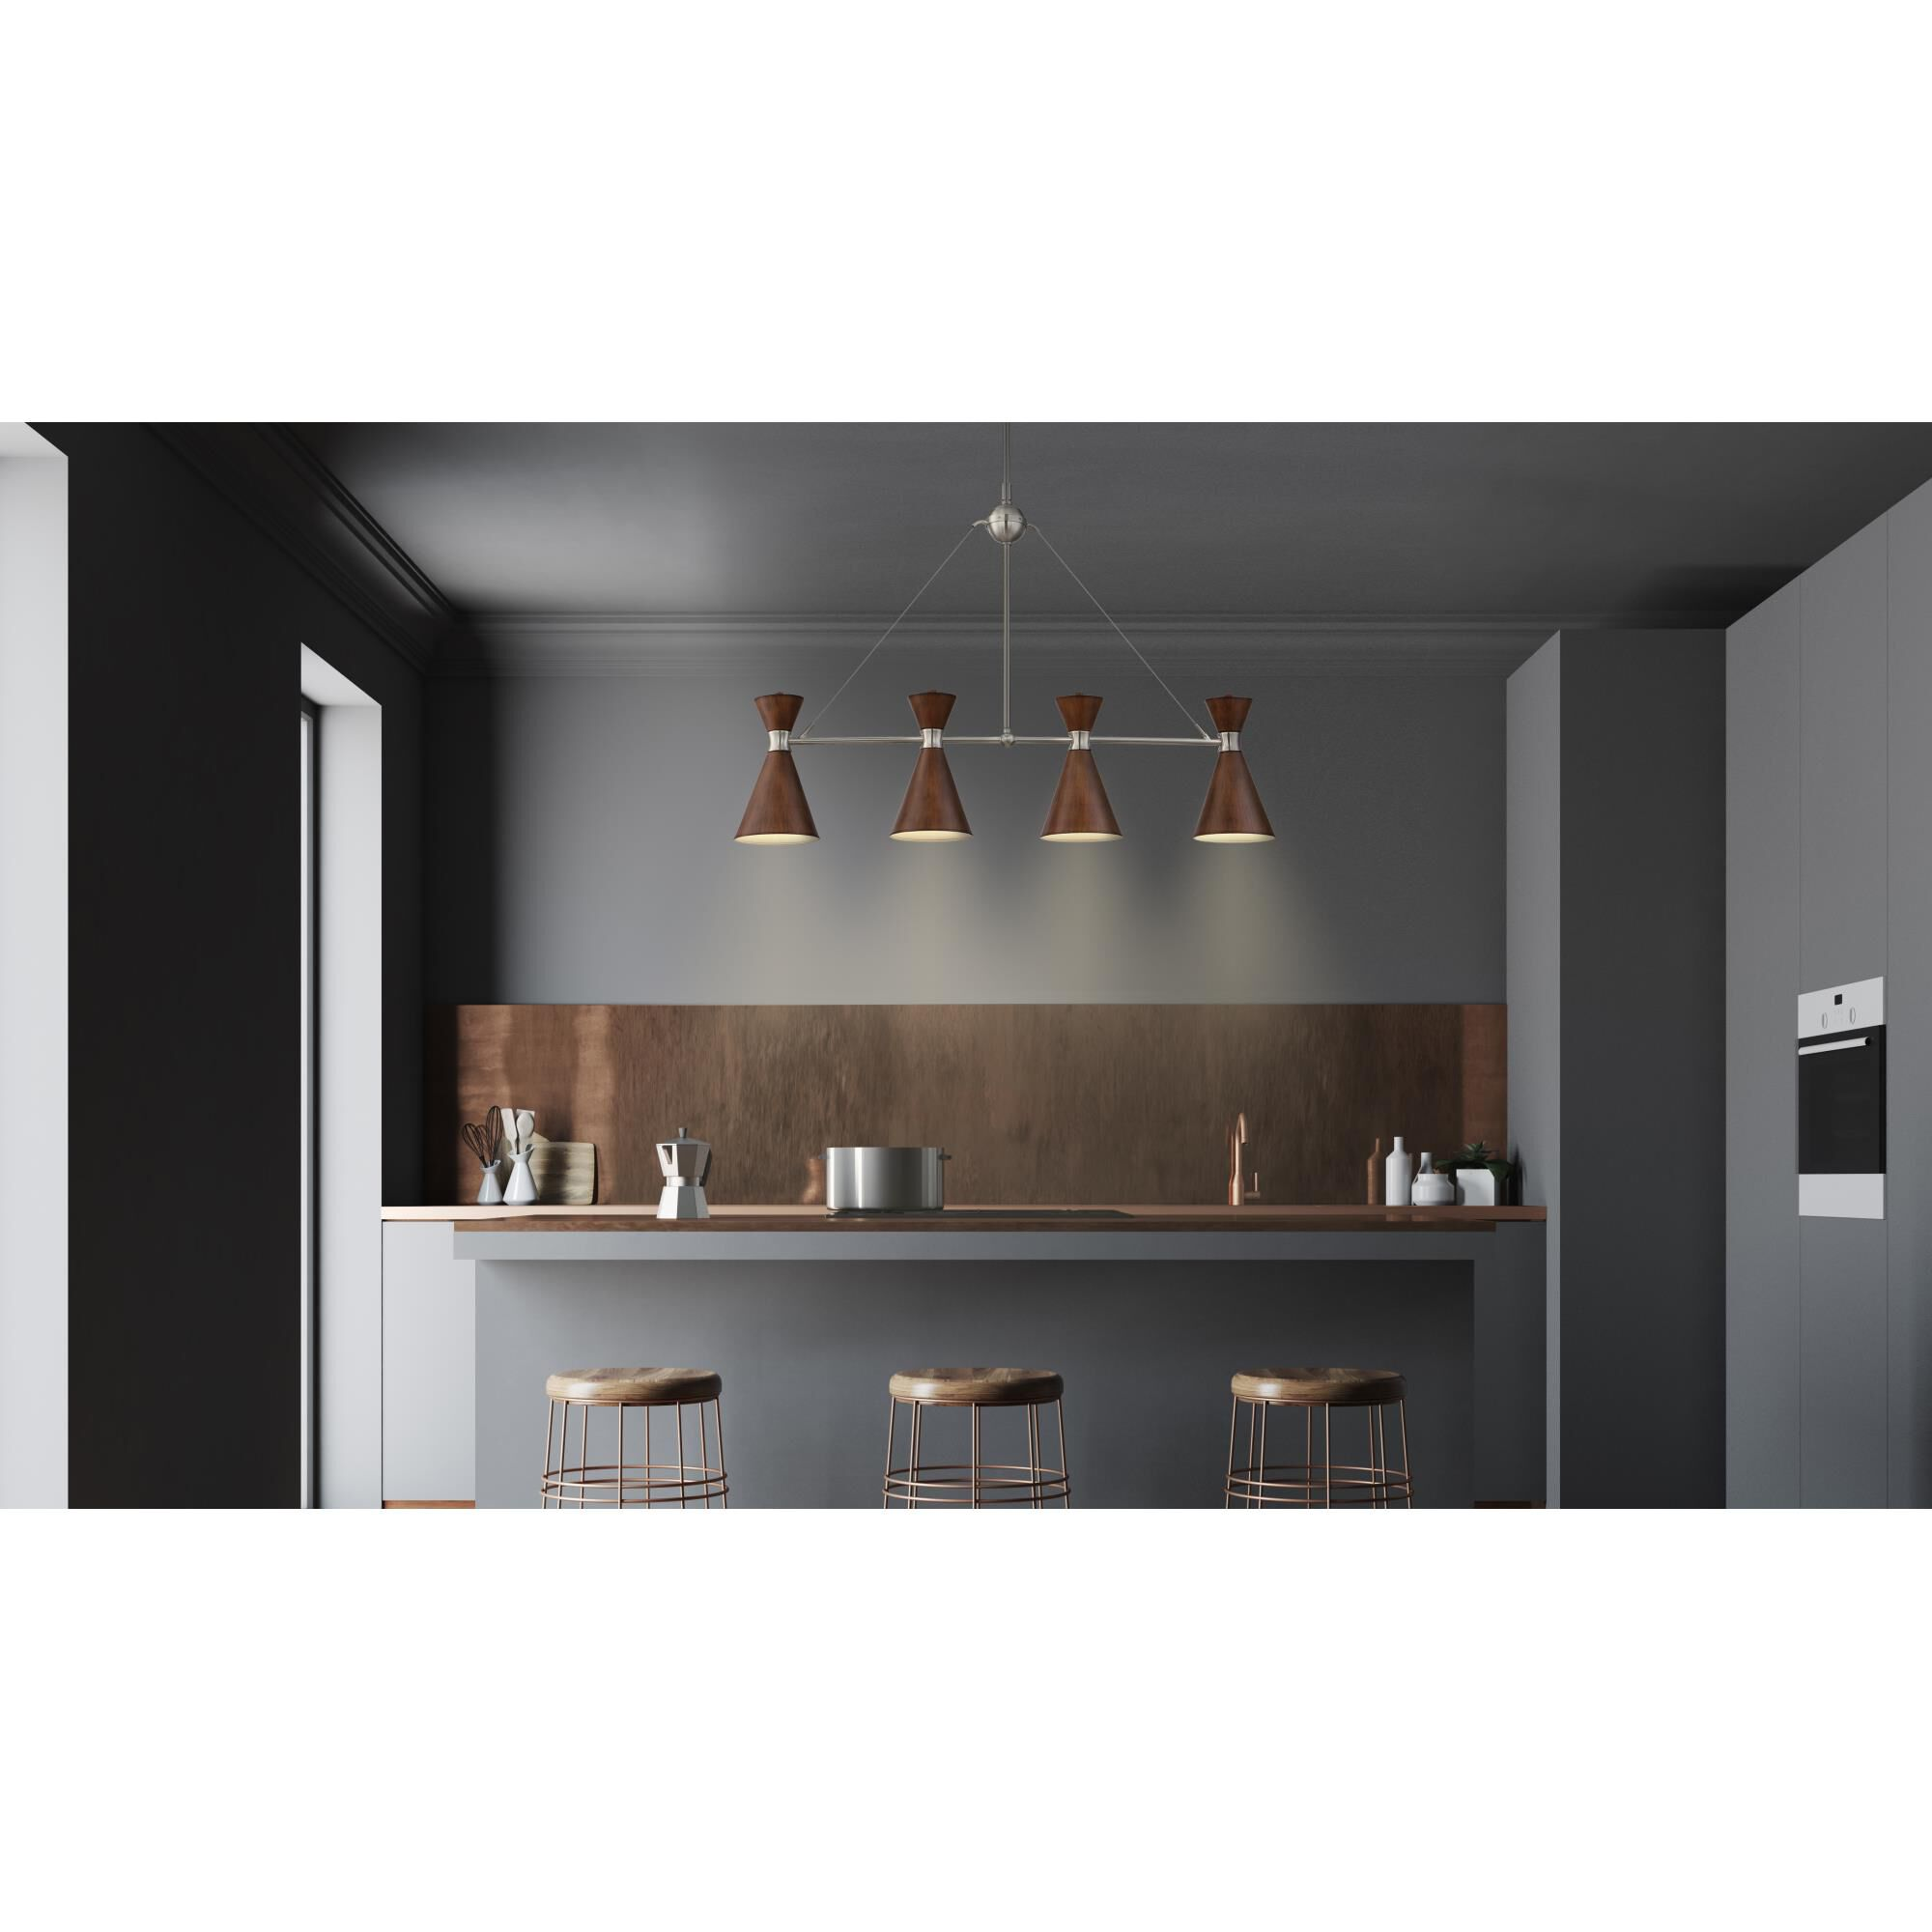 Kovacs Conic 35 Inch 4 Light Linear Suspension Light Conic - P1824-651 - Transitional